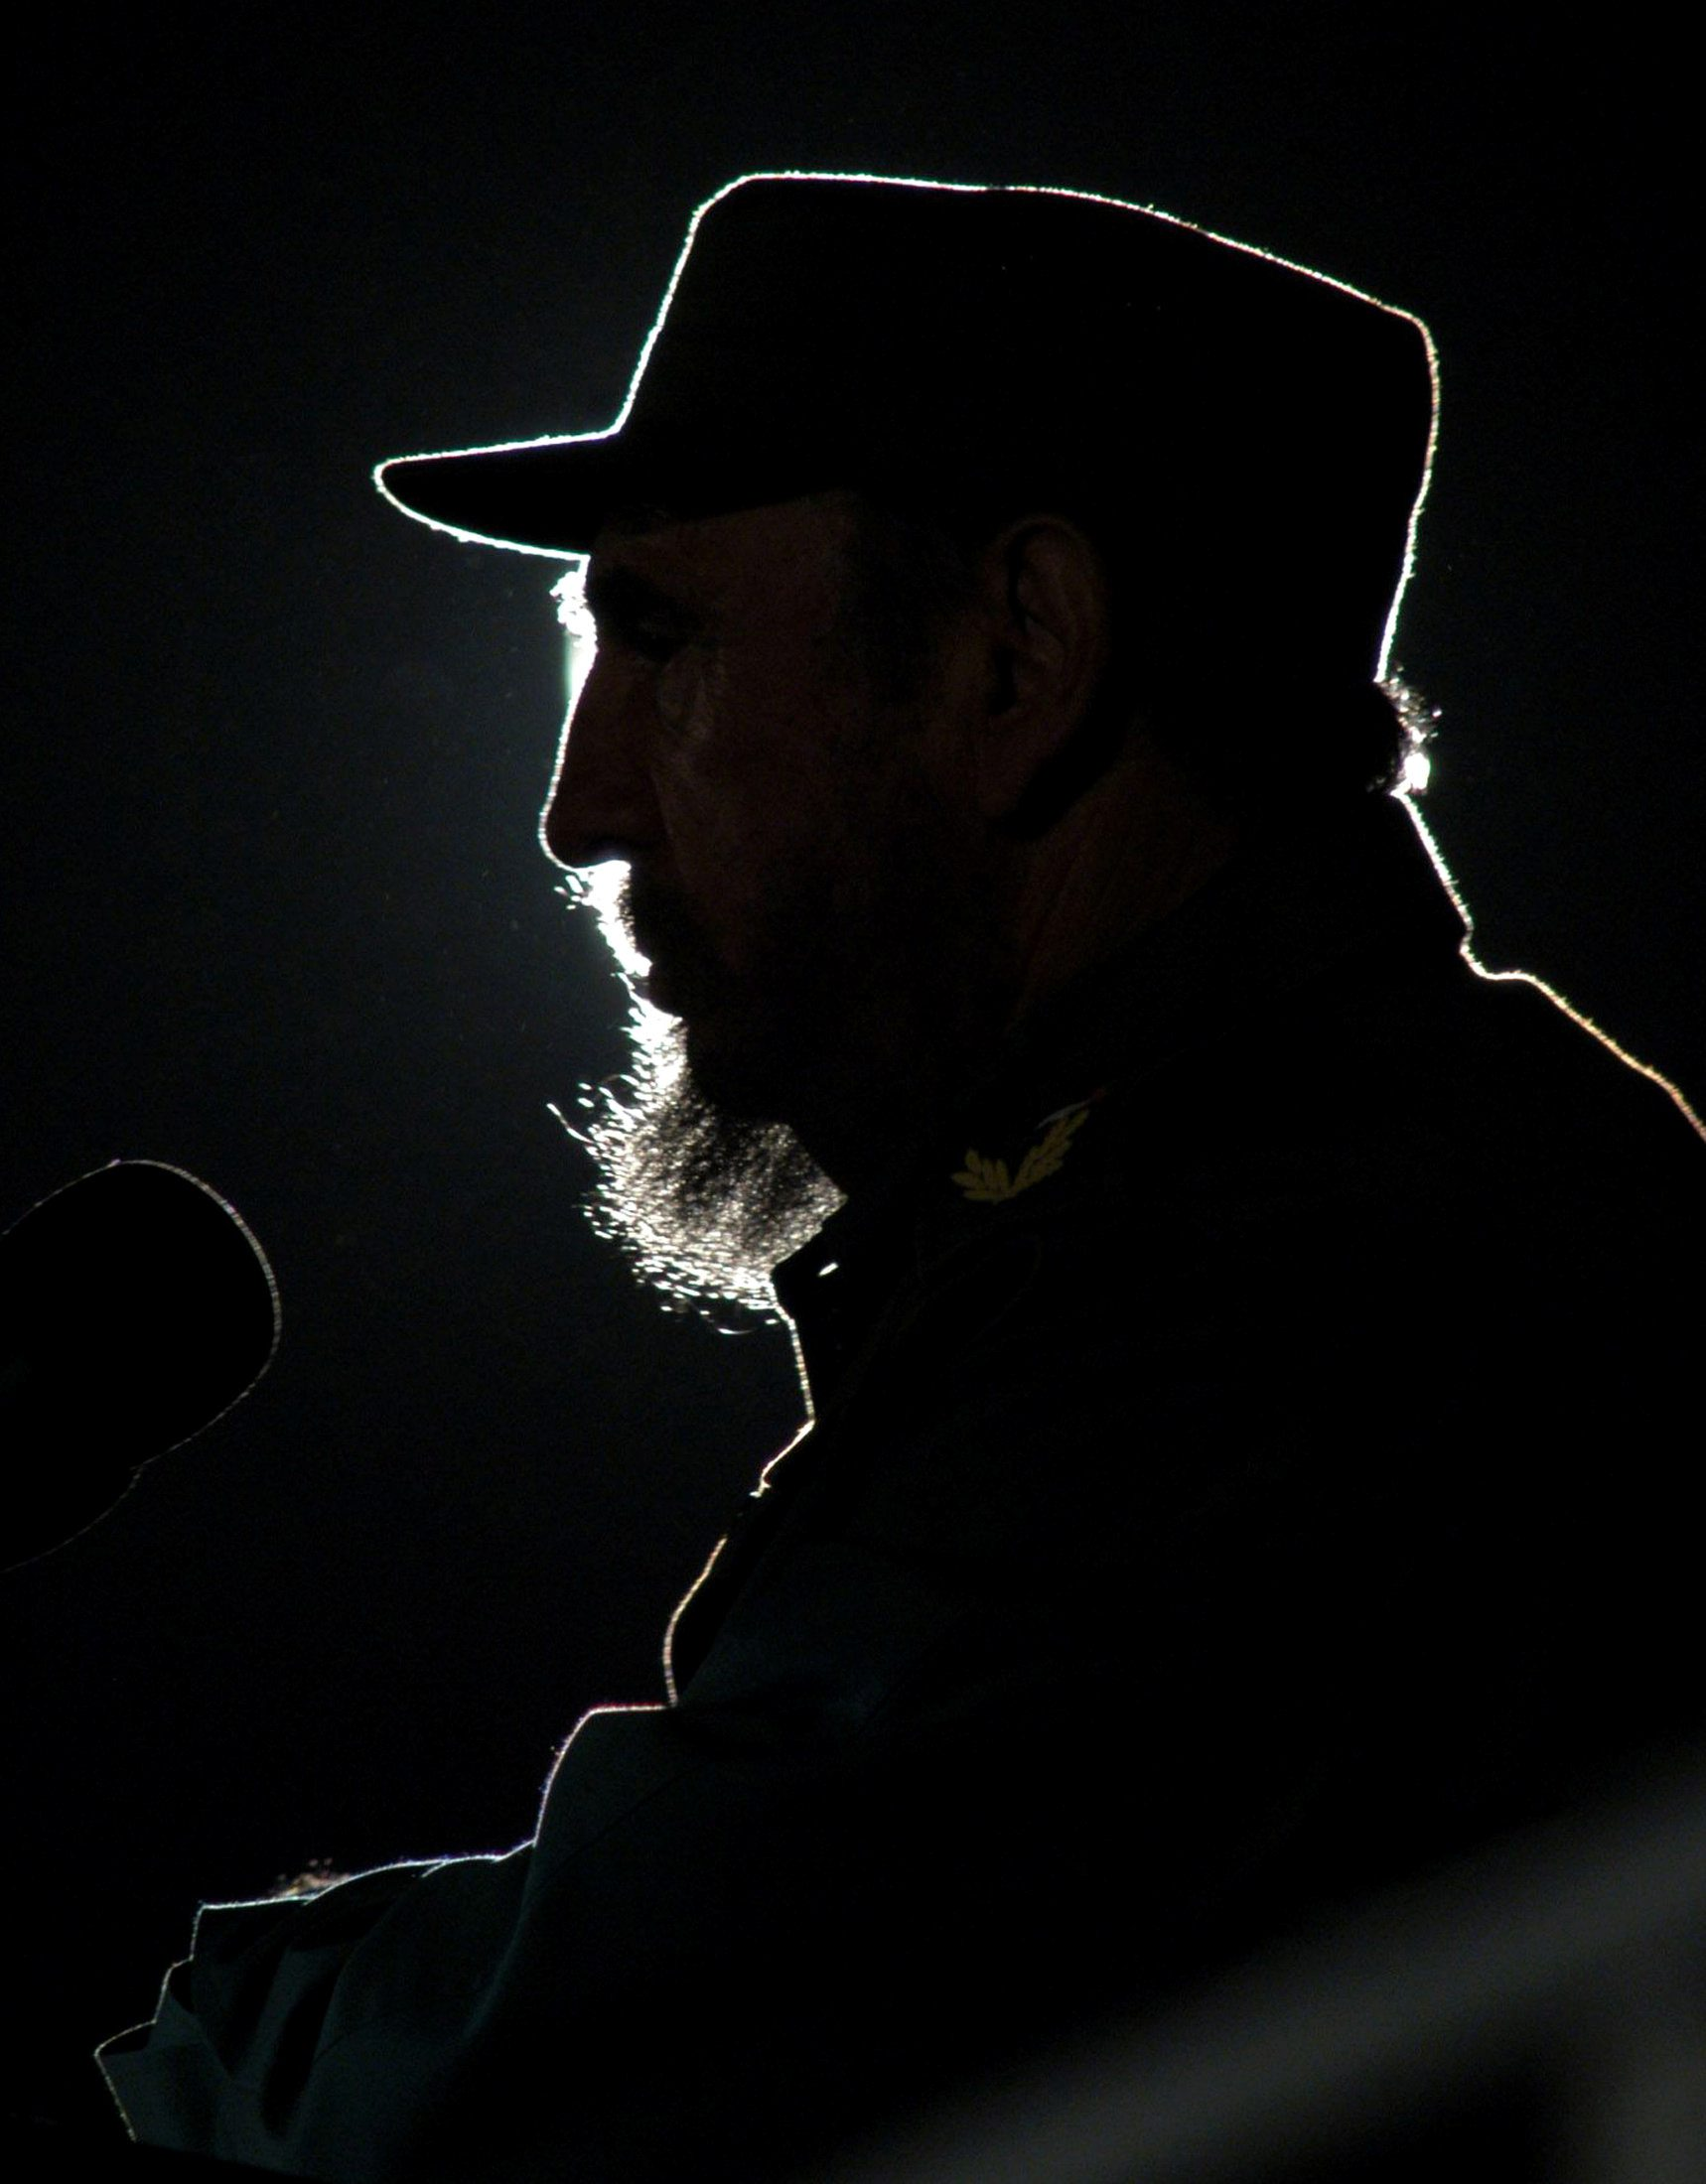 Then Cuban President Fidel Castro addresses the audience during an event with his Venezuelan counterpart Hugo Chavez on Havana's Revolution Square in this February 3, 2006 file photo. REUTERS/Stringer/File Photo